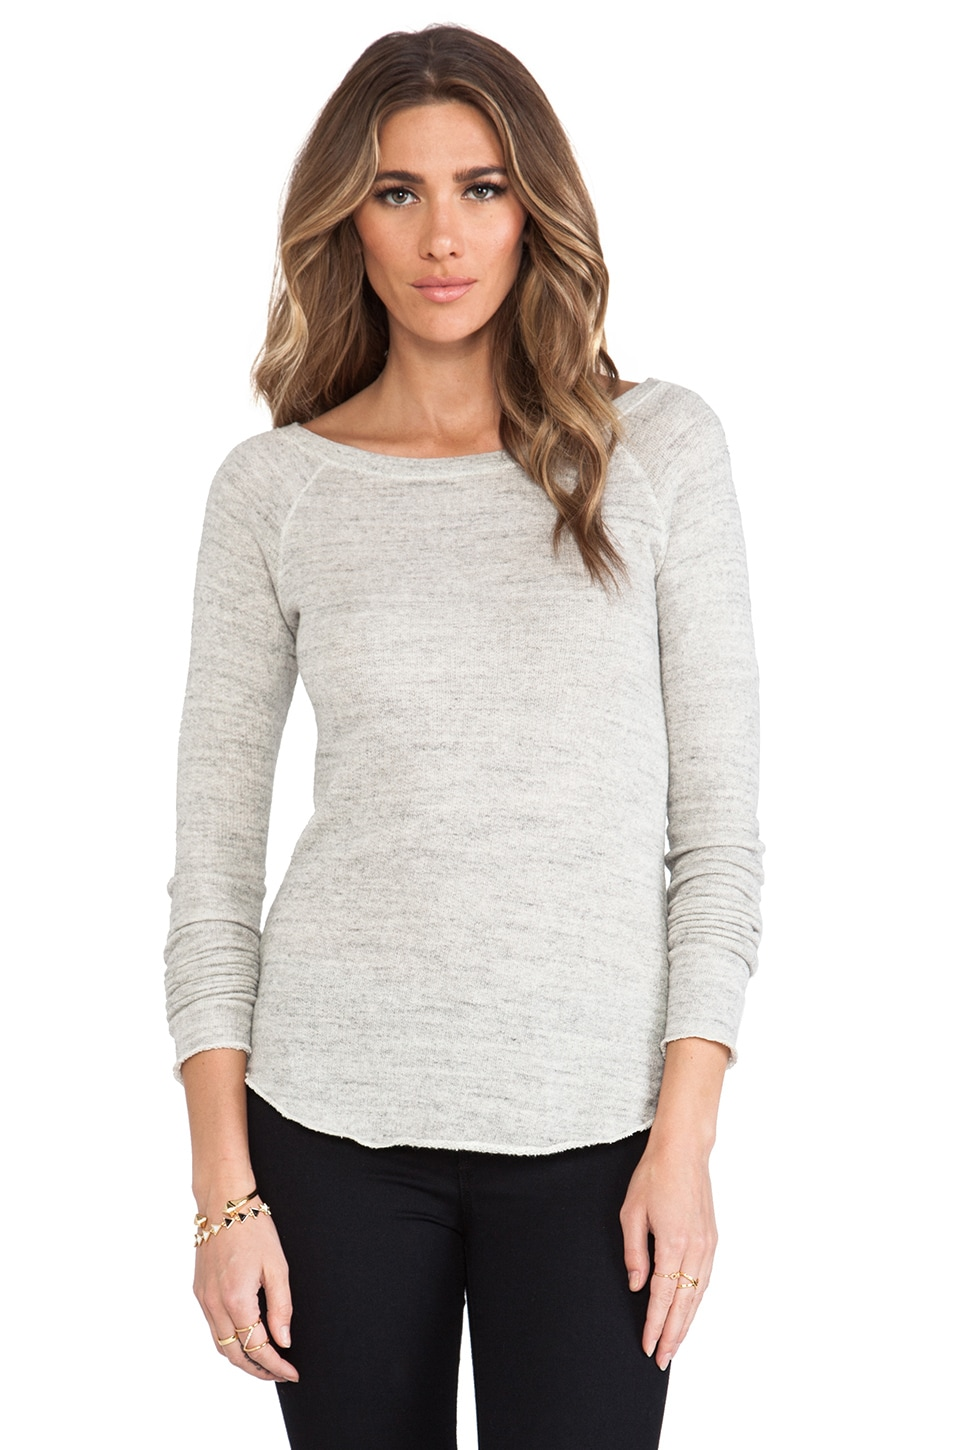 AG Adriano Goldschmied Sweat raglan en Gris Chiné